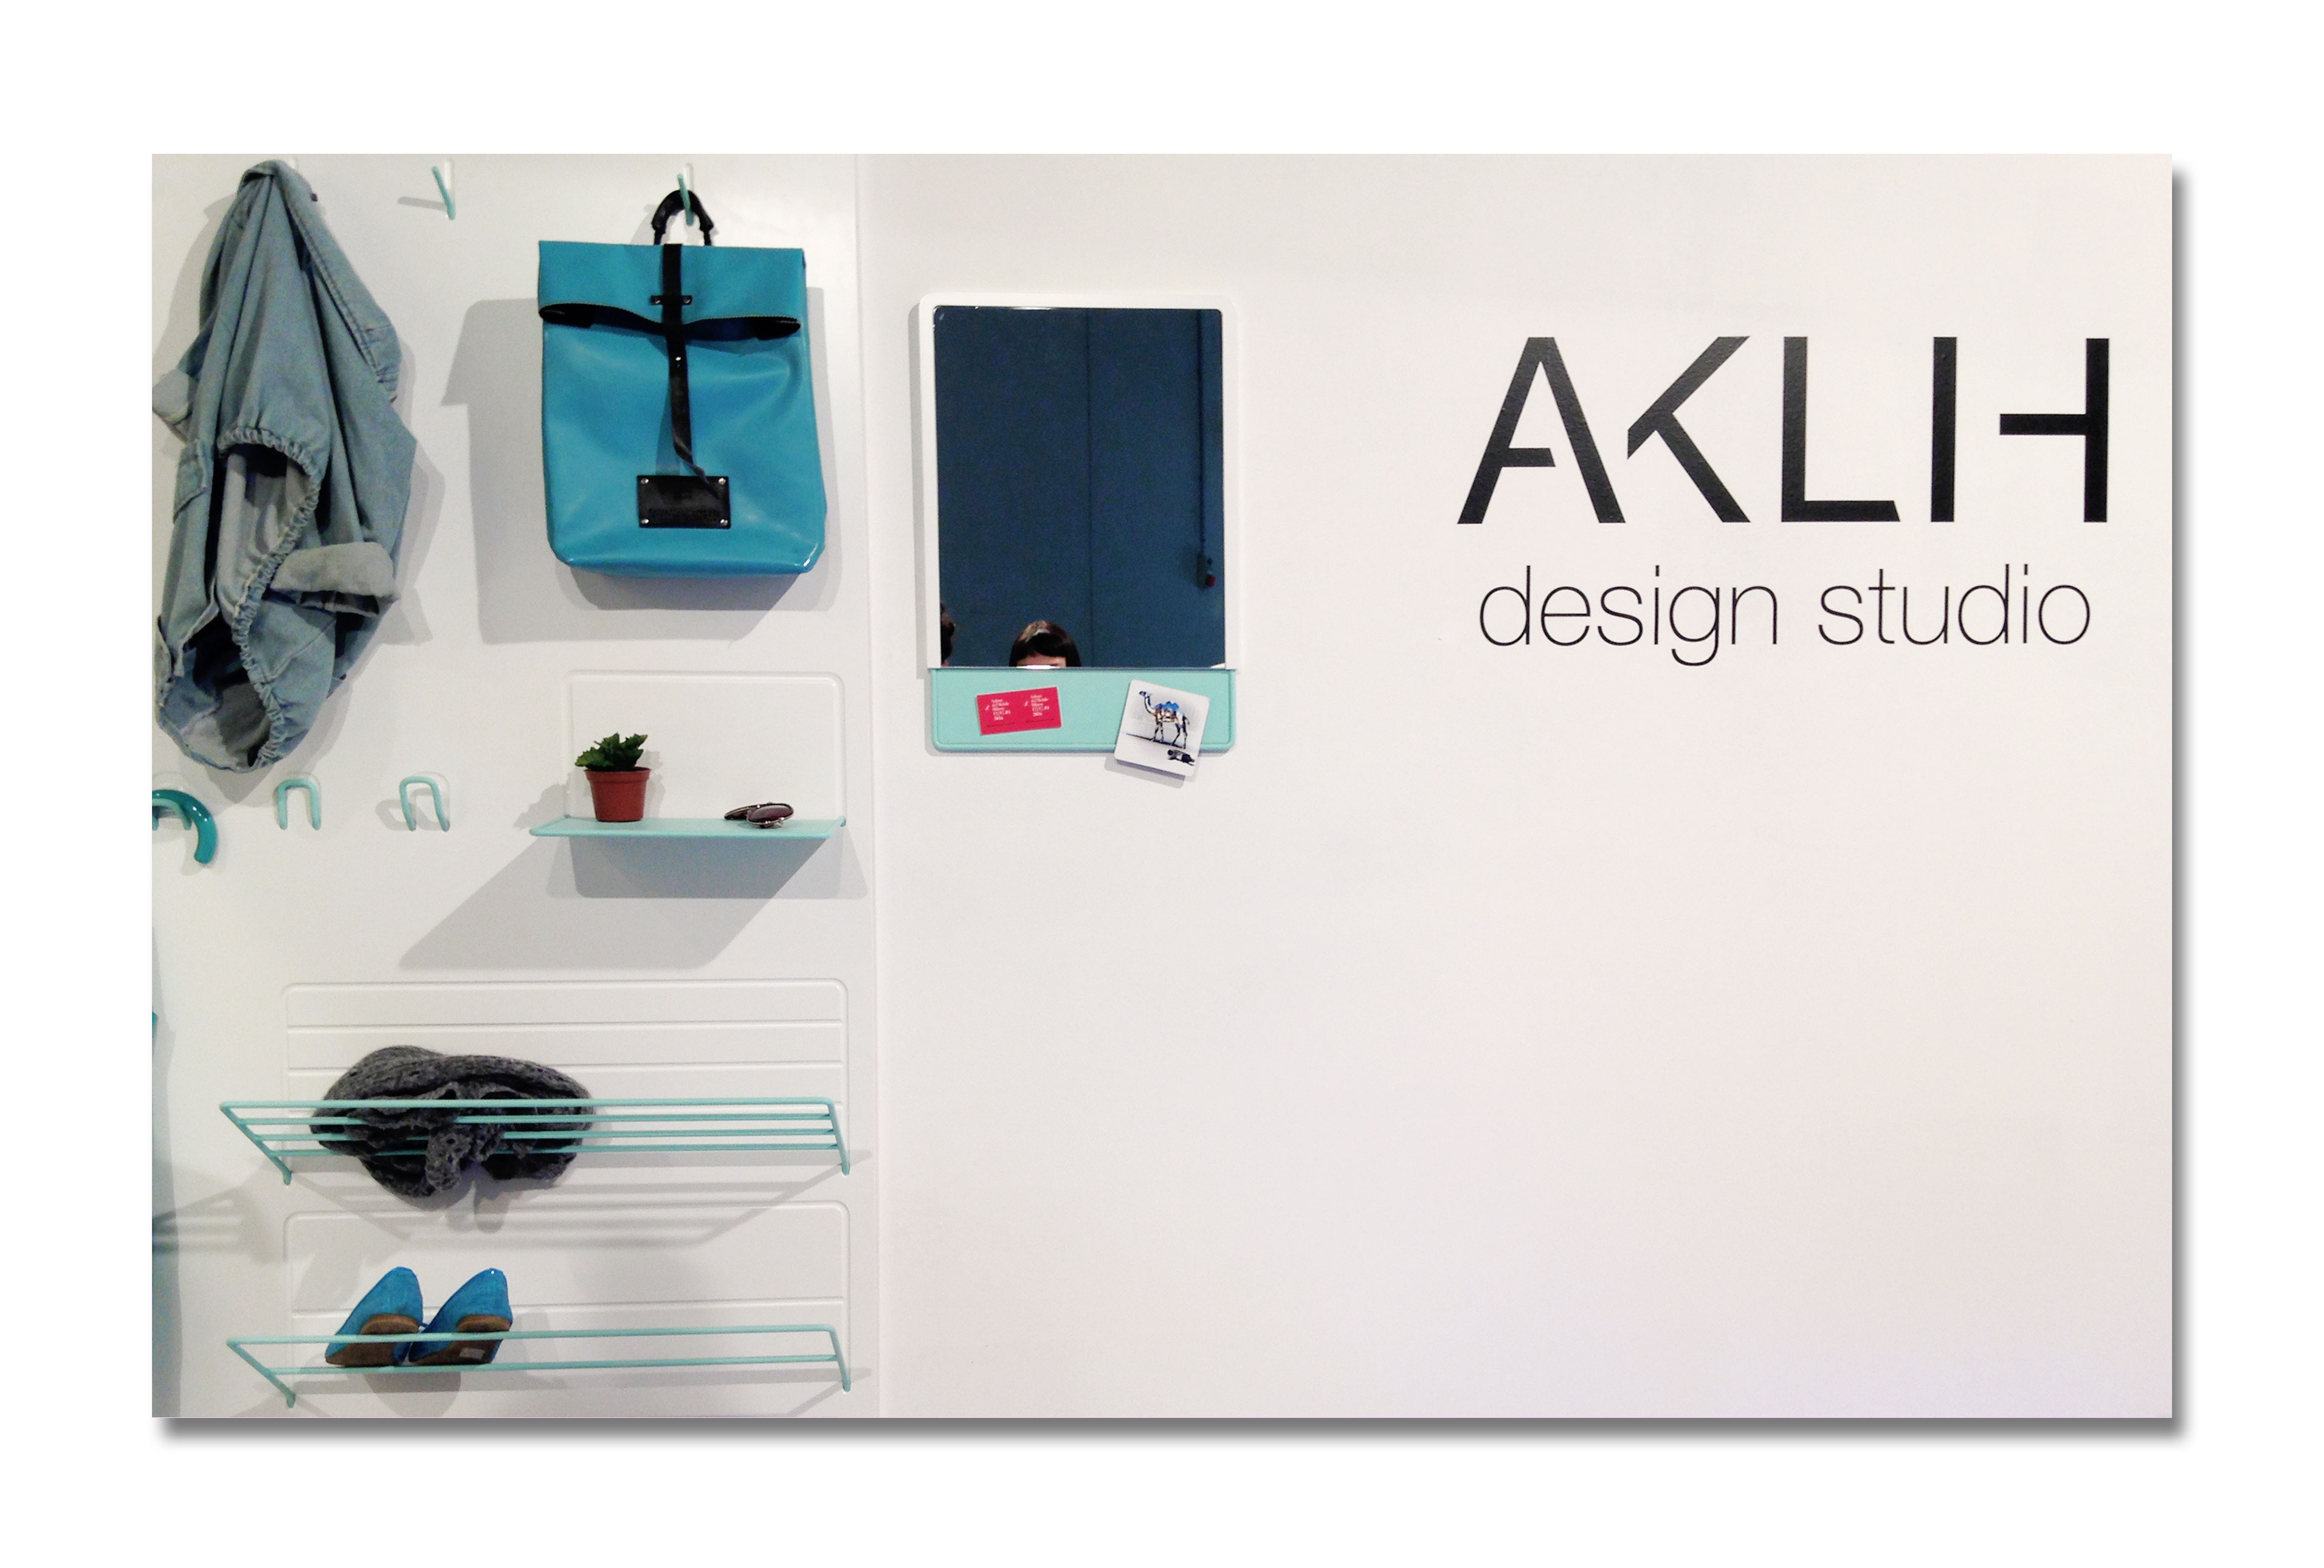 Aklih design studio